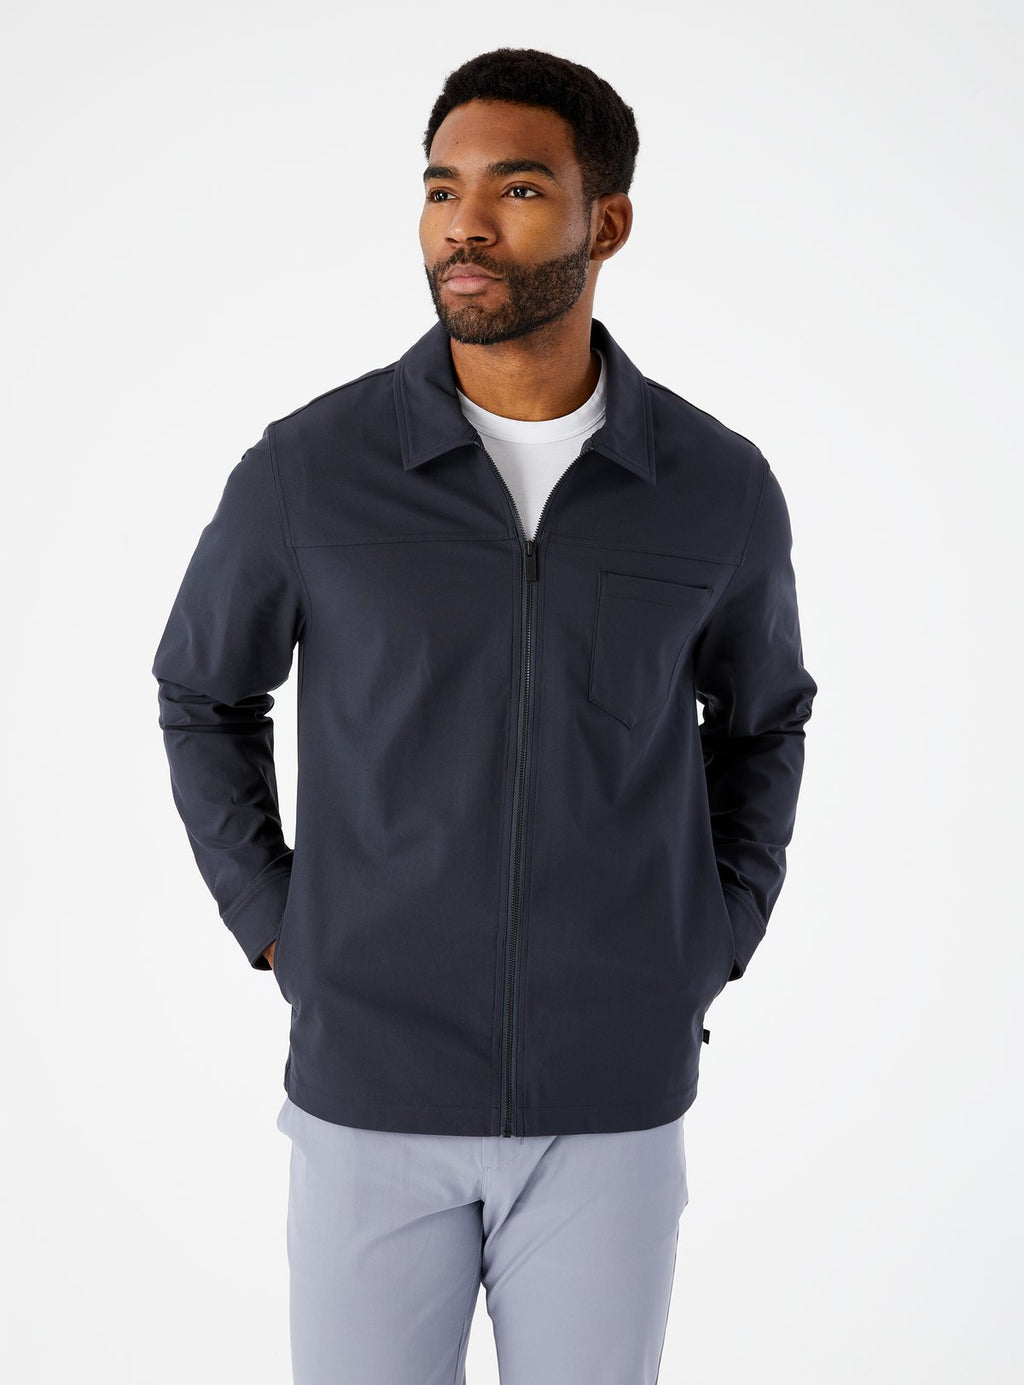 7 Diamonds- 4 Way Stretch Jacket- Charcoal